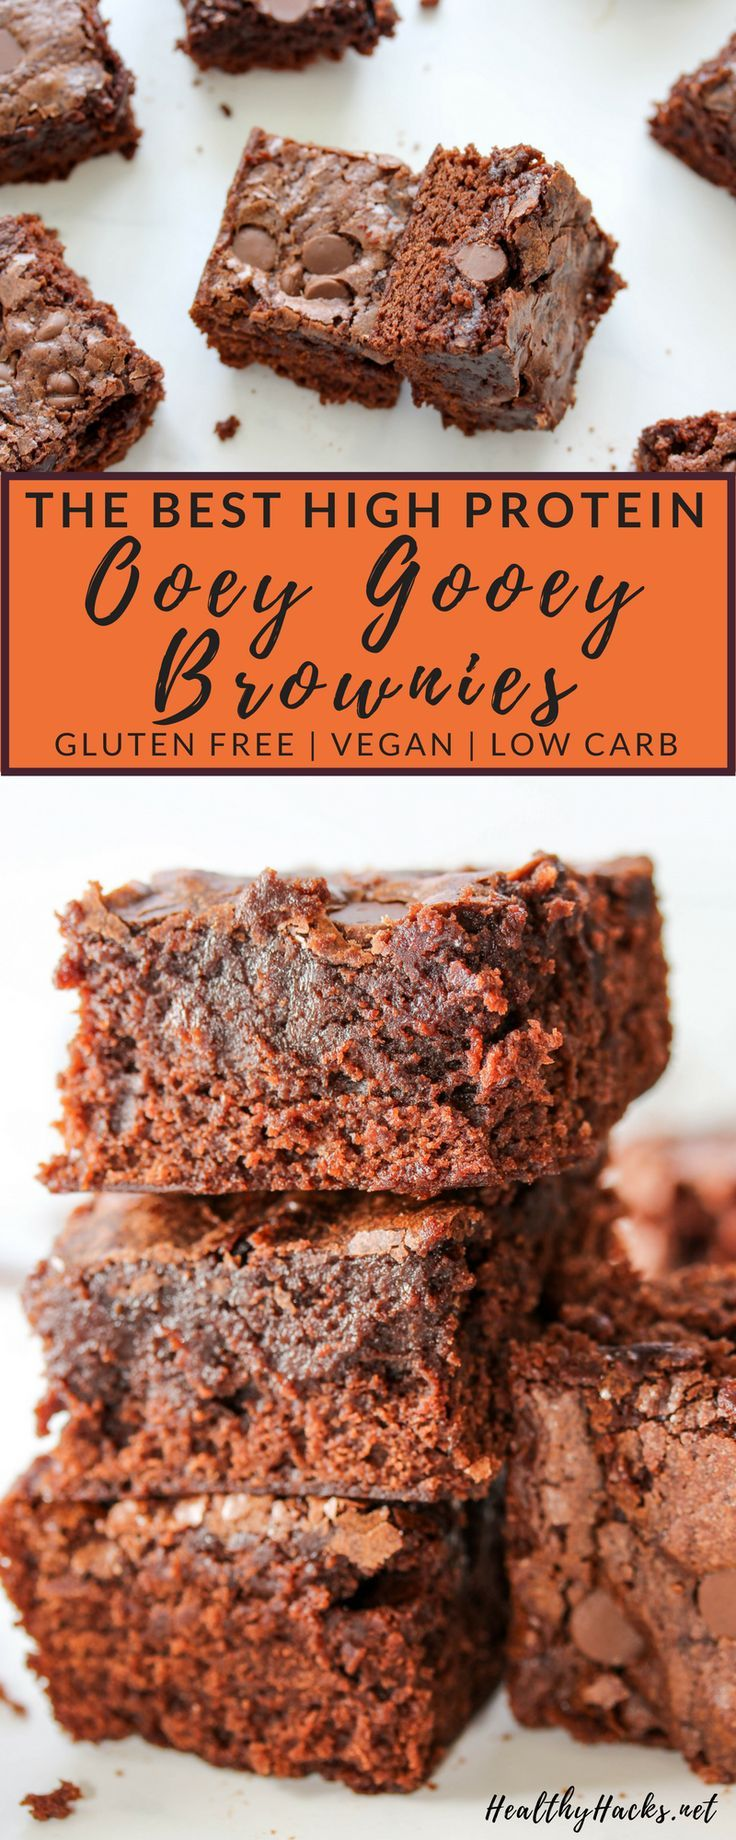 Calling All Brownie Lovers This Healthy Brownie Recipe Is The